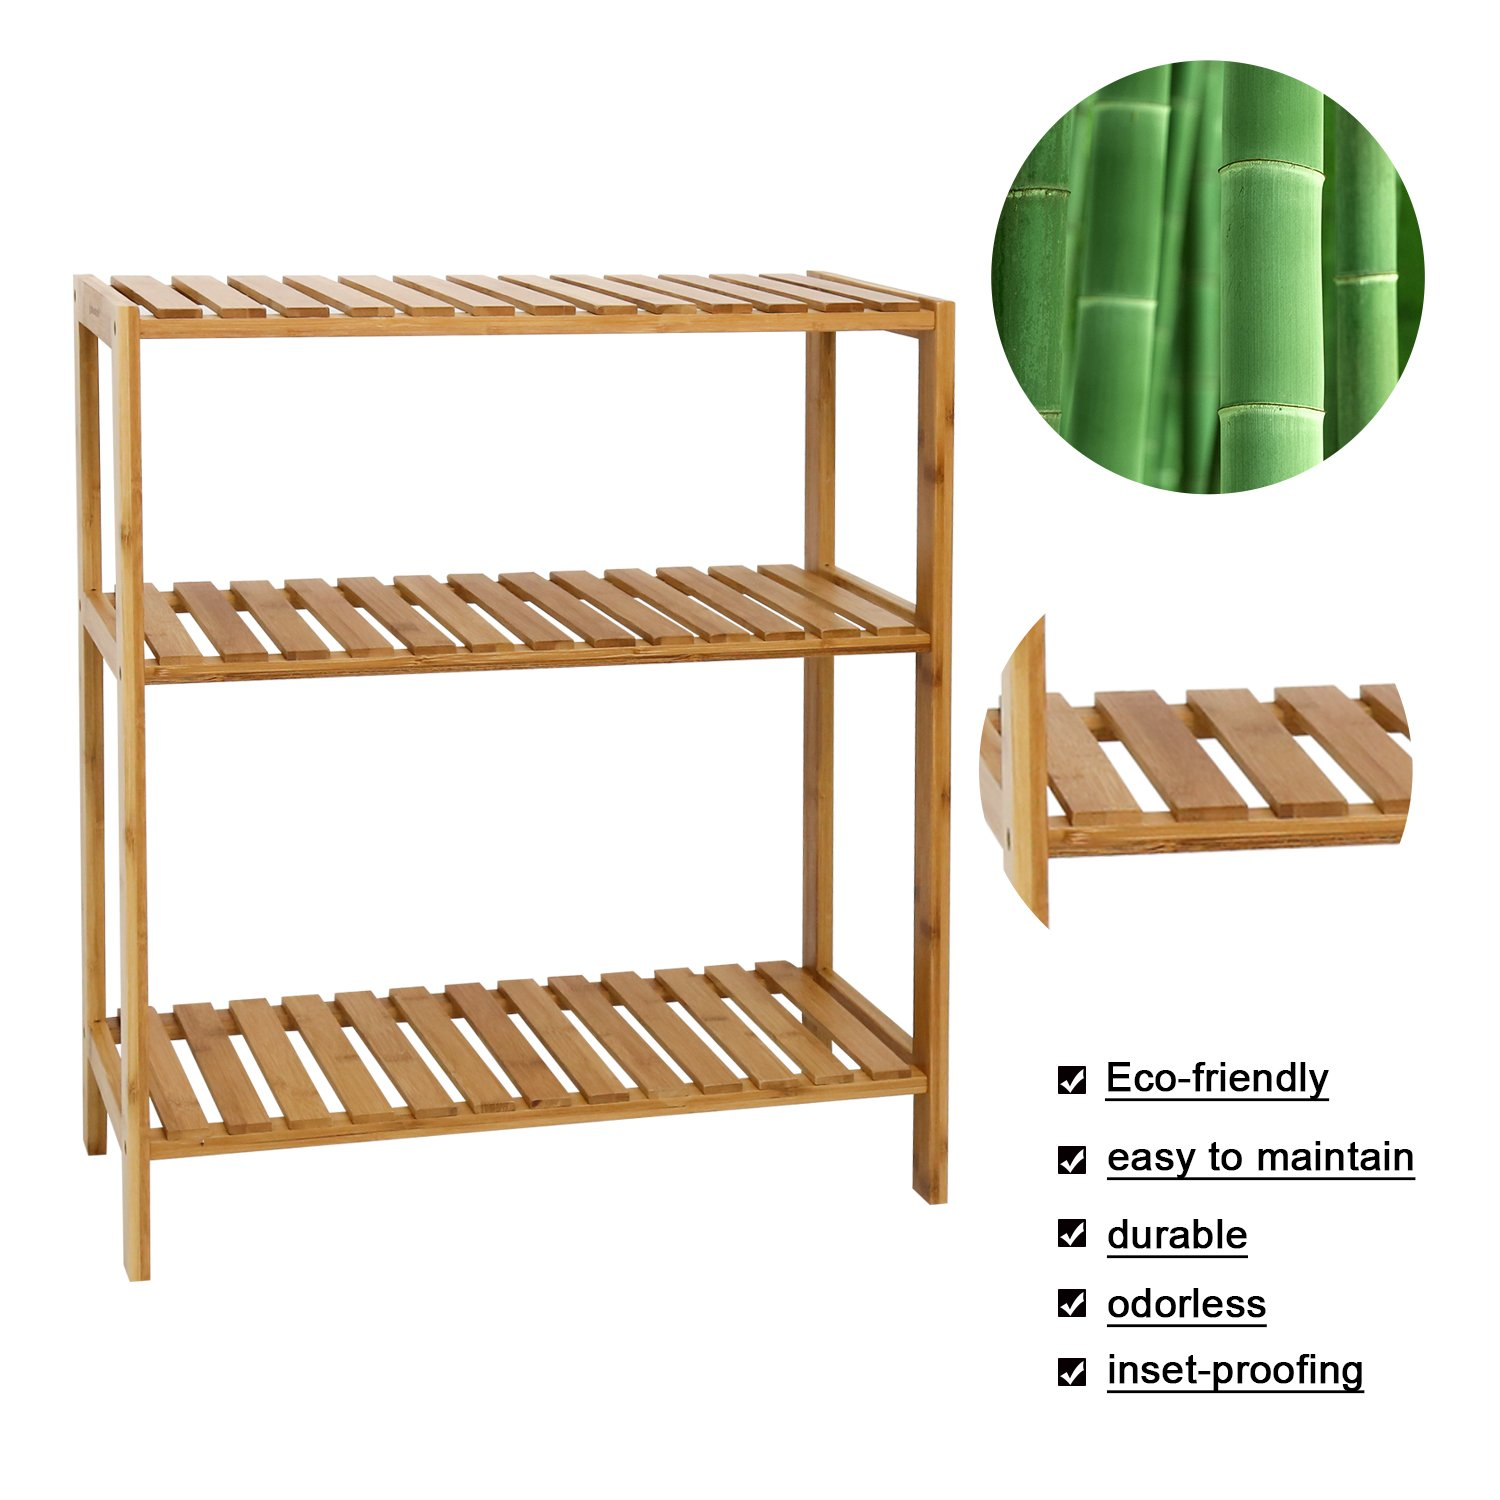 Kinbor Bamboo Rack Multifunctional Bathroom Kitchen Living Room Holder Plant Flower Stand Utility Storage Shelf (3-Tier) by Kinbor